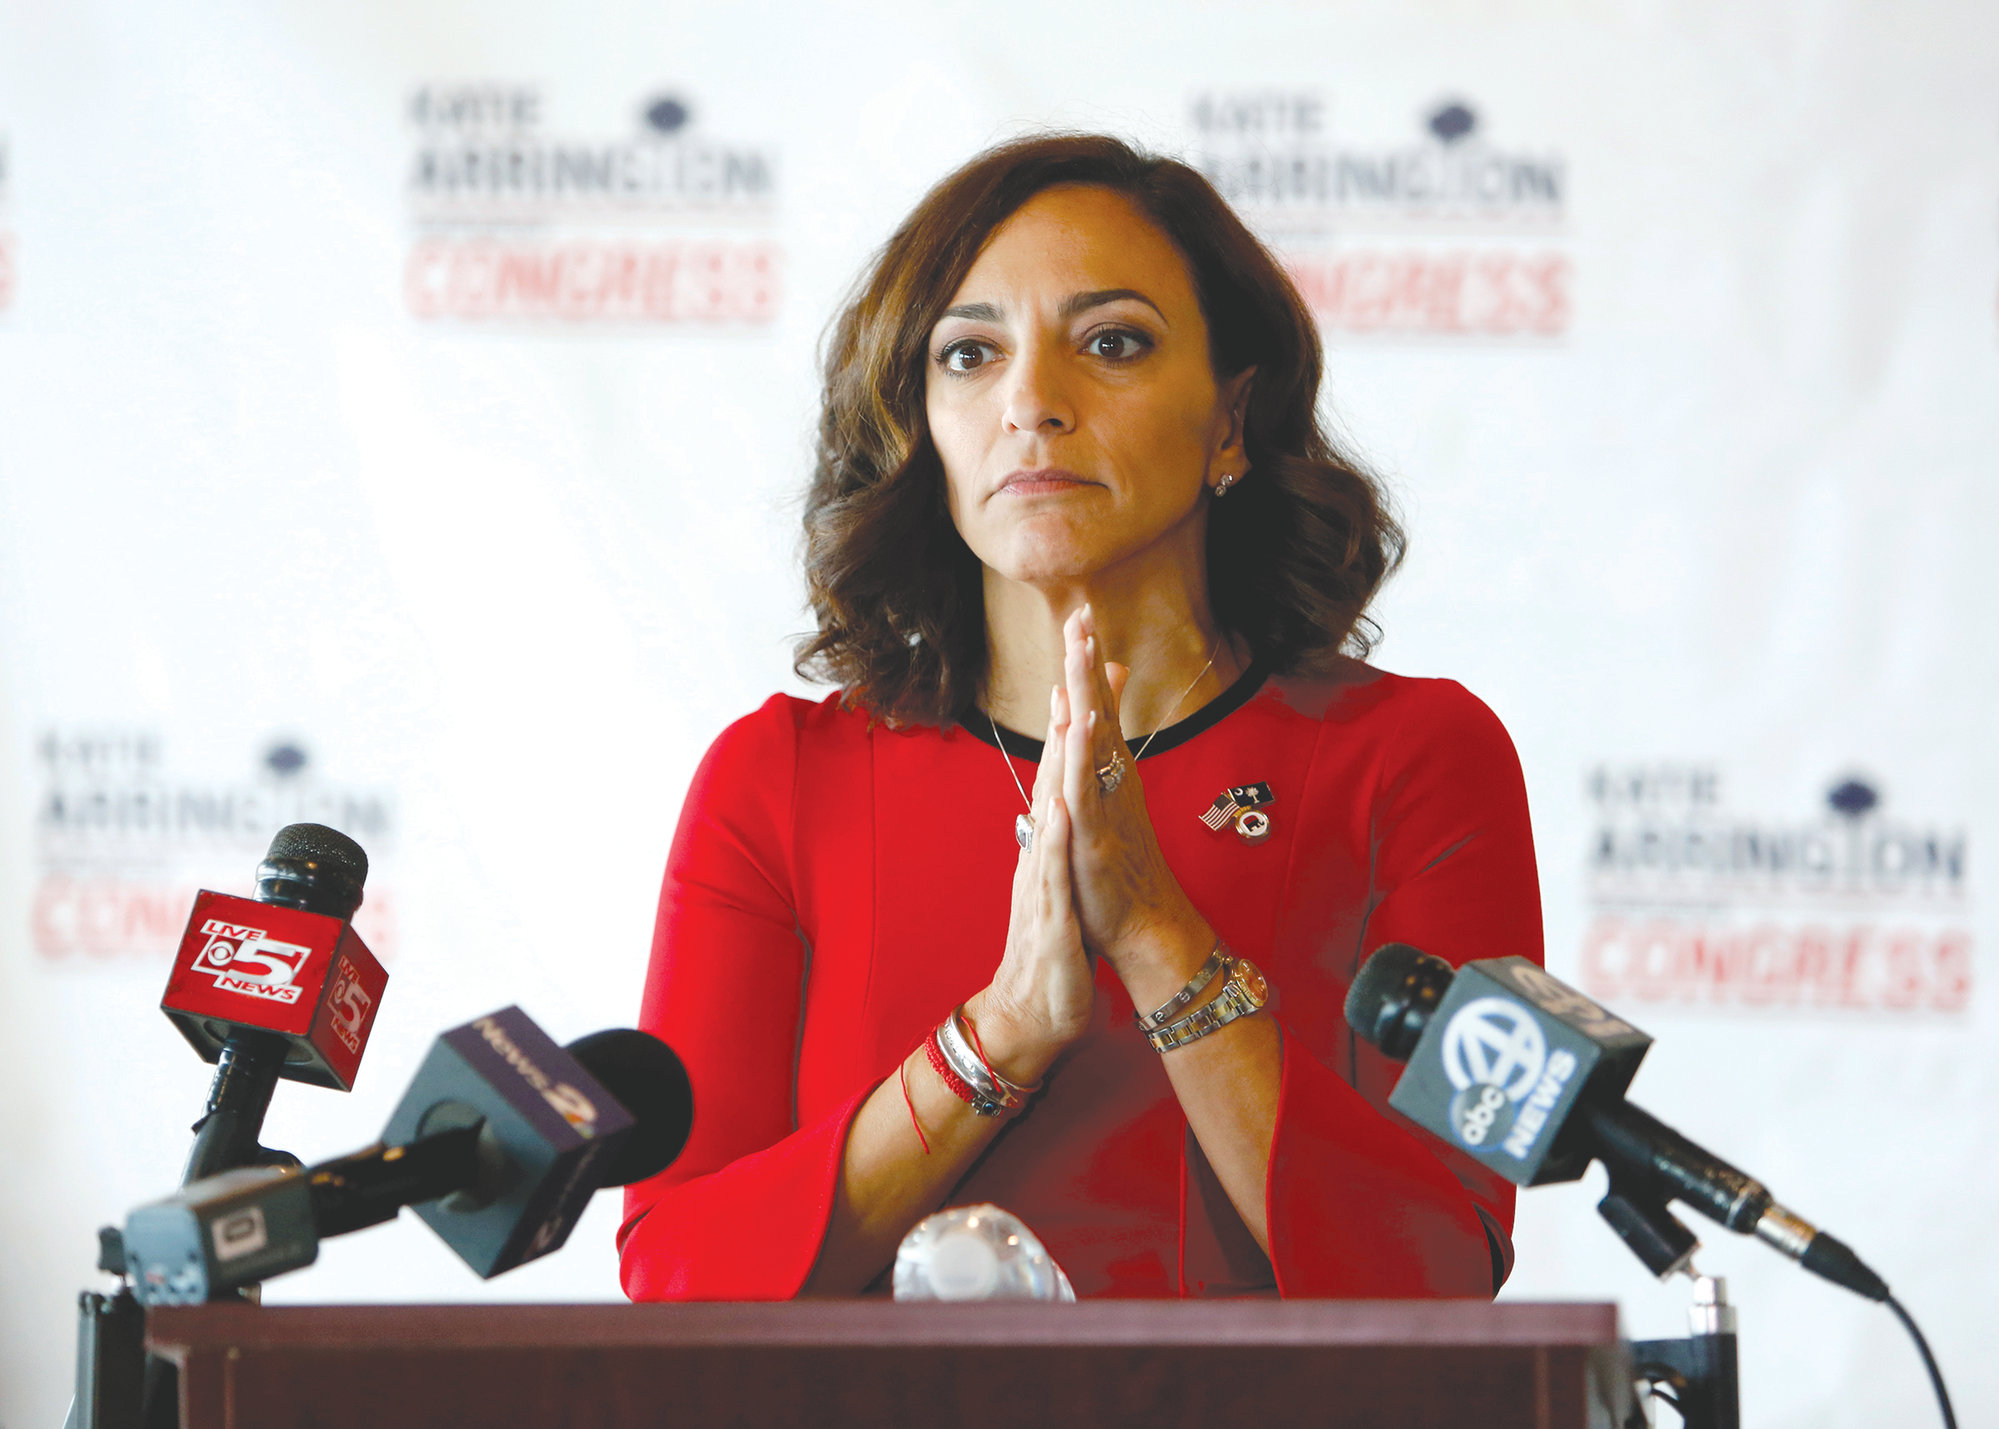 Republican nominee for Congress Katie Arrington concedes the race to Democrat Joe Cunningham during her press conference at the Staybridge Suites in Mt. Pleasant on Wednesday.